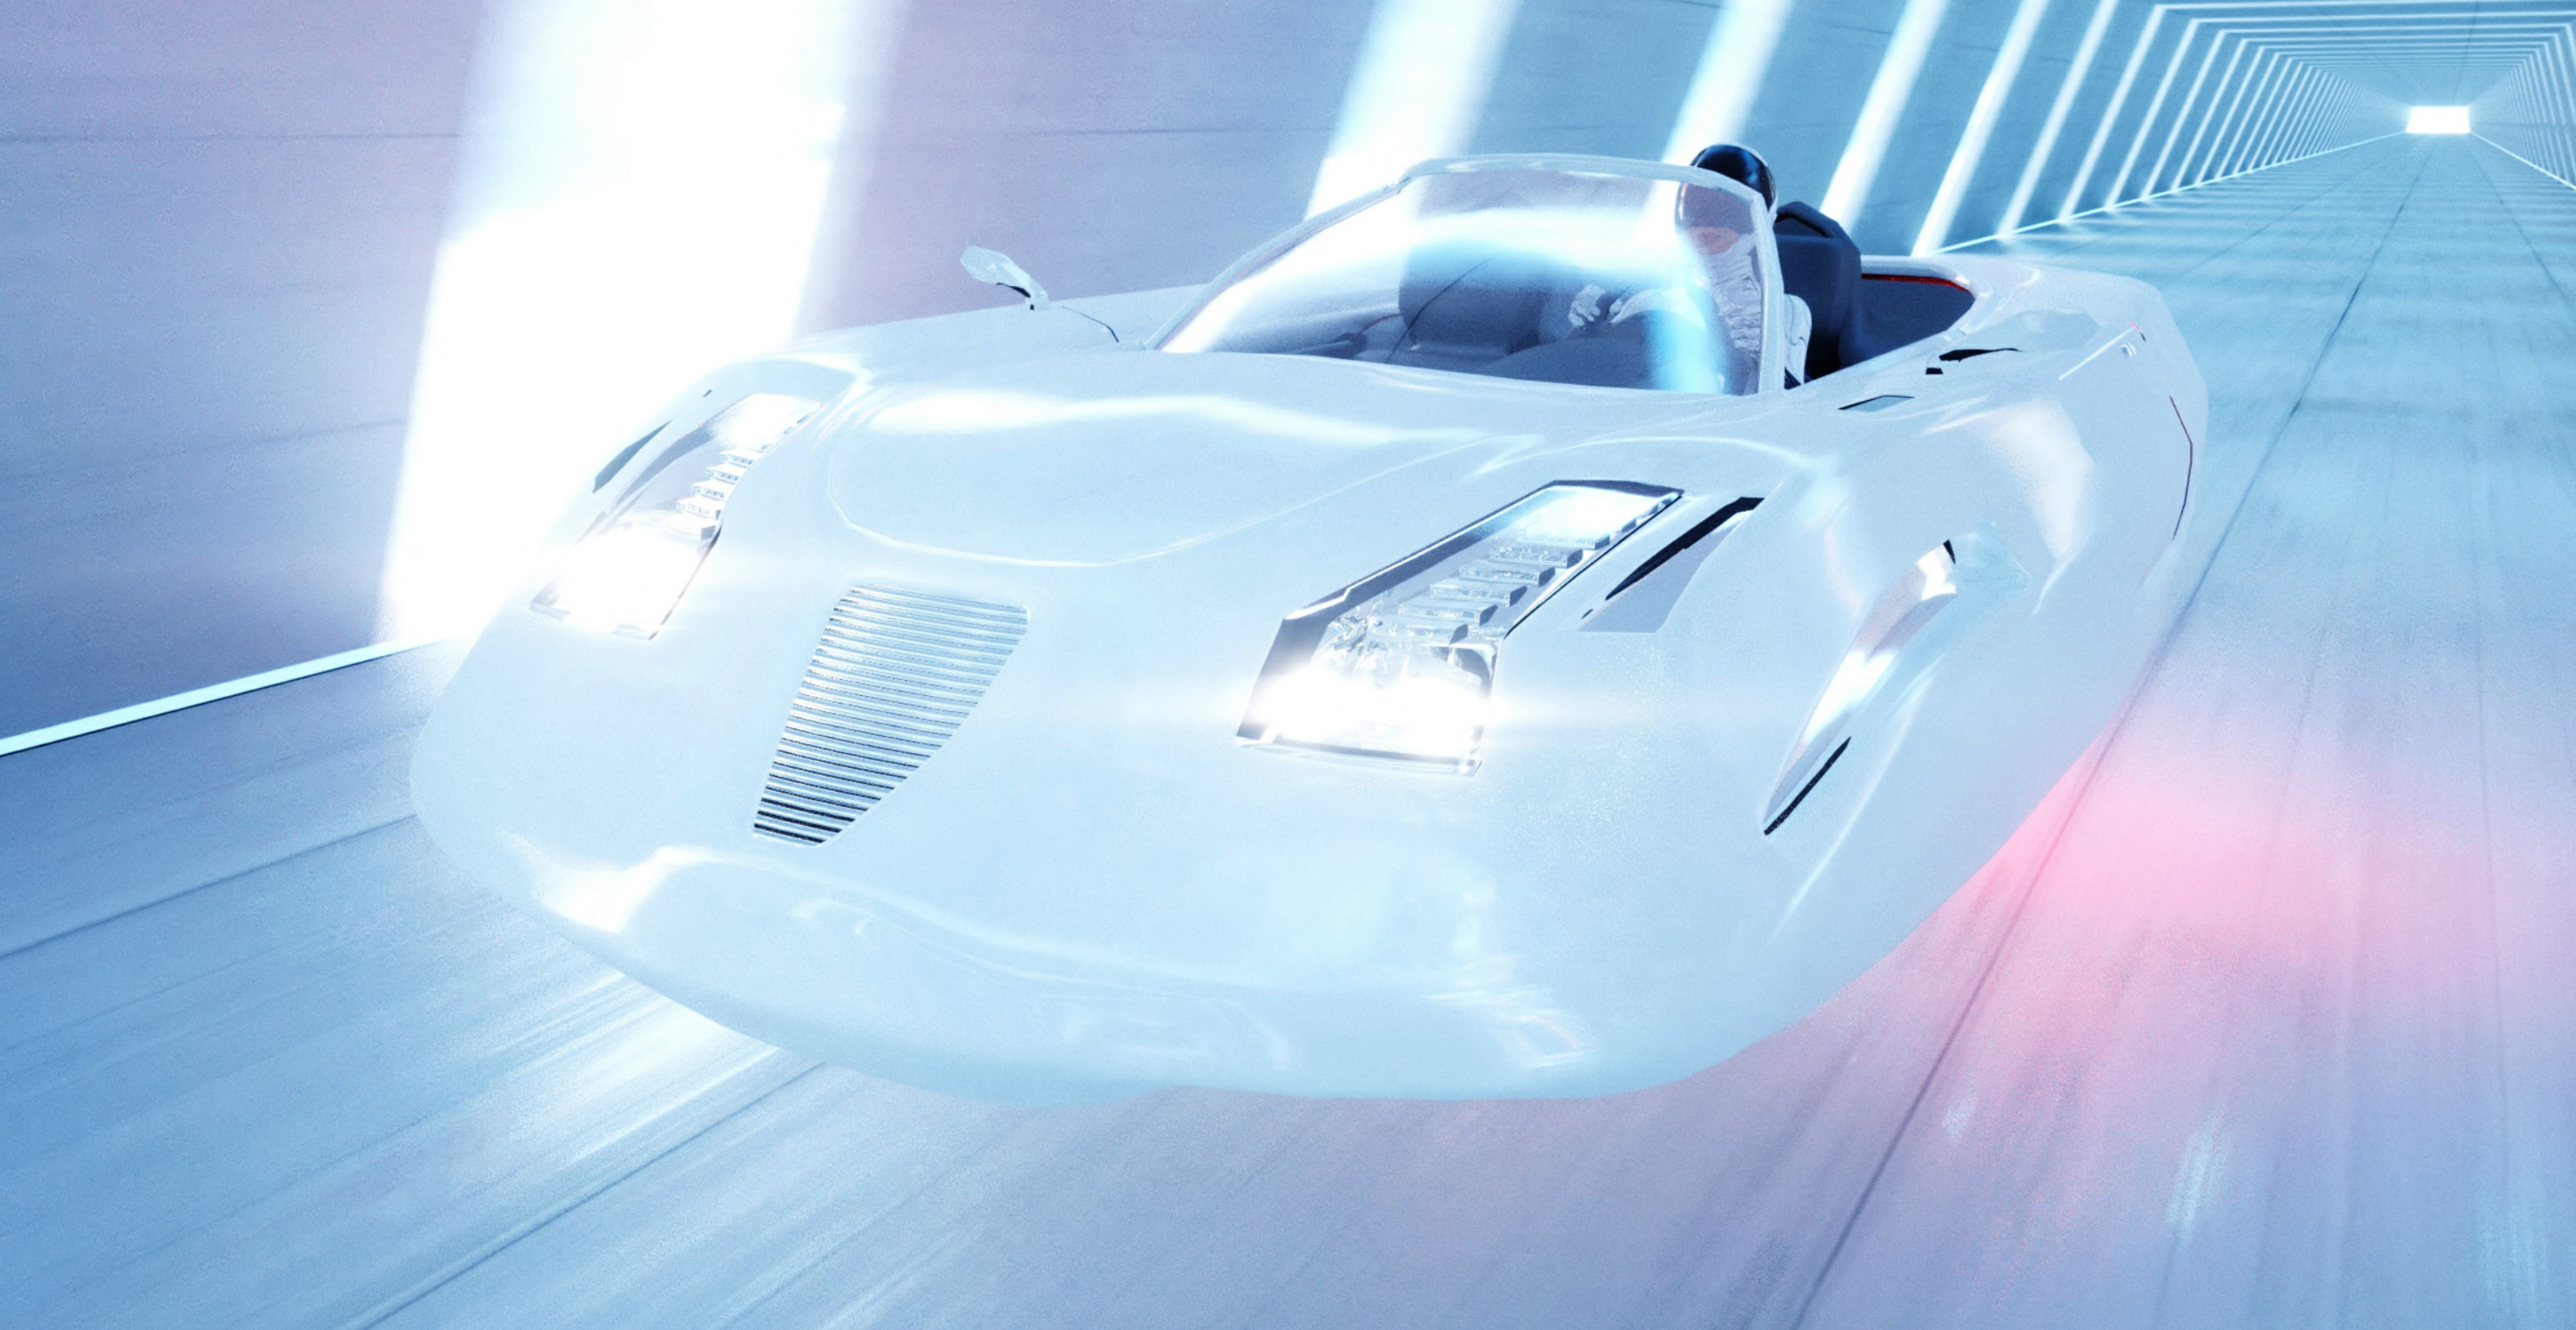 Porsche and Boeing are working on a flying car concept